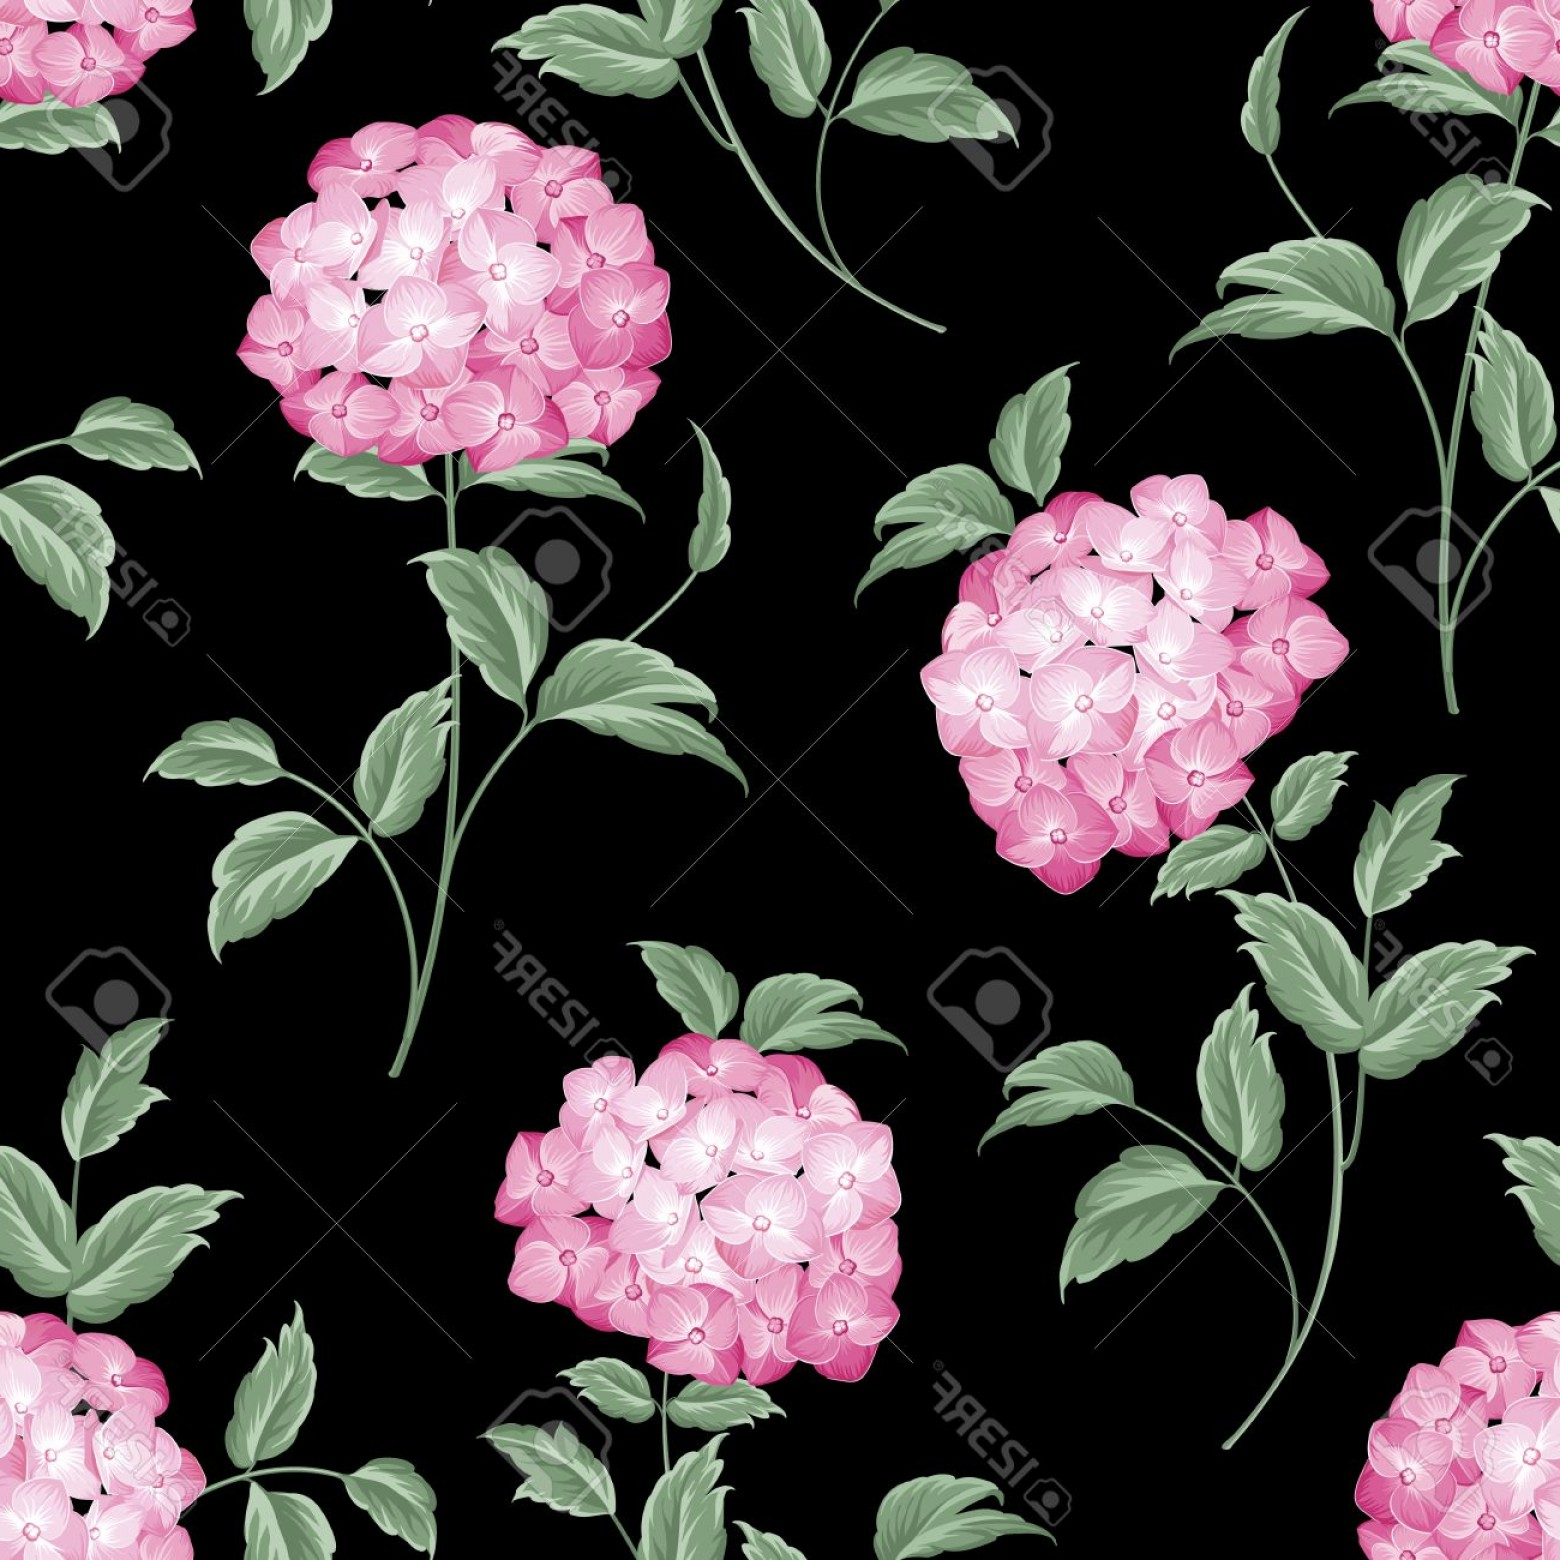 Vector Mop Flower: Photostock Vector Pink Flowers Of Hydrangea On Black Background Mop Head Hydrangea Flower Fabric Pattern Vector Illust